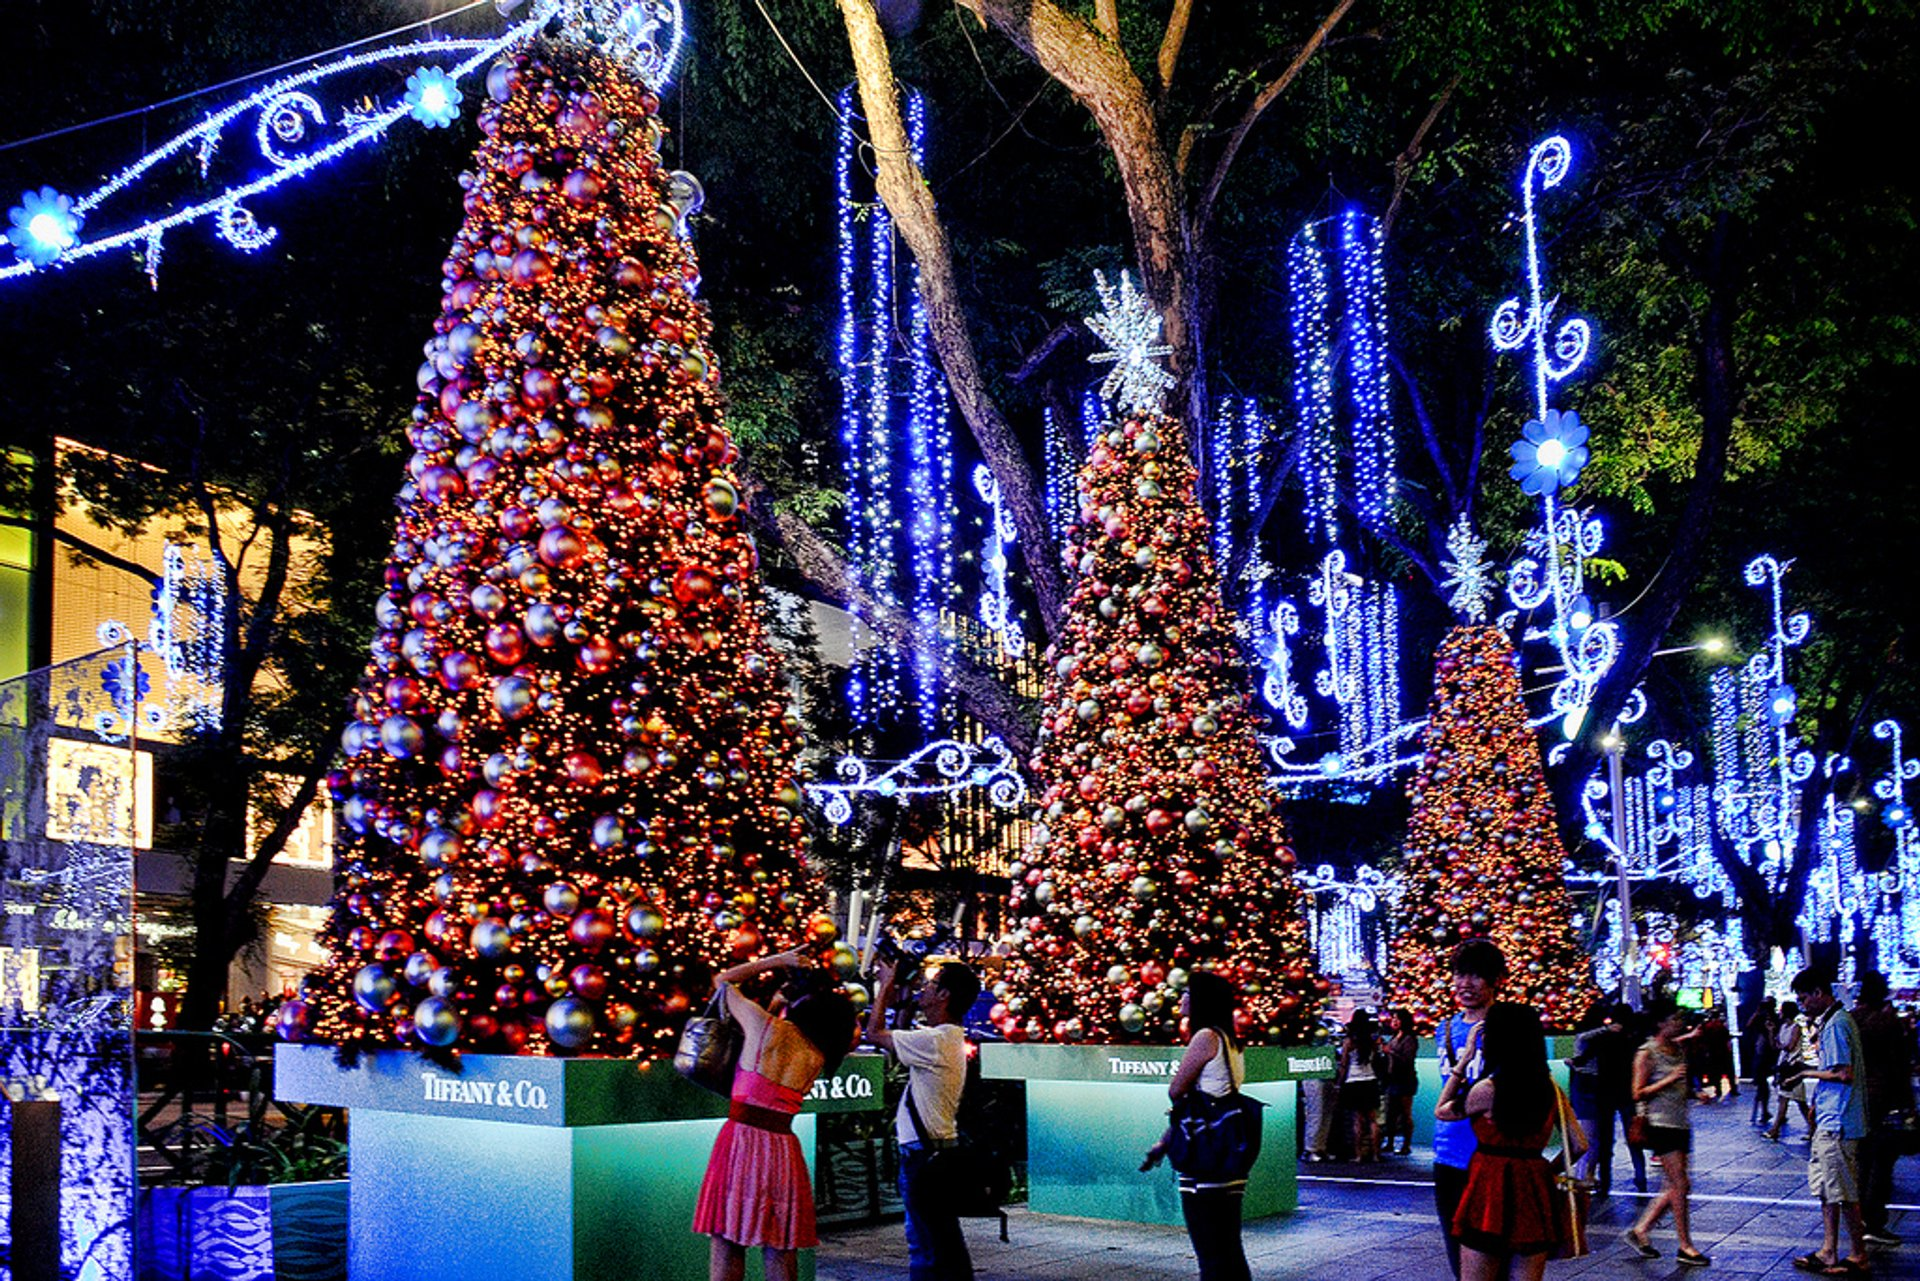 Christmas trees along the pedestrian mall, Ngee Ann City, Singapore 2020